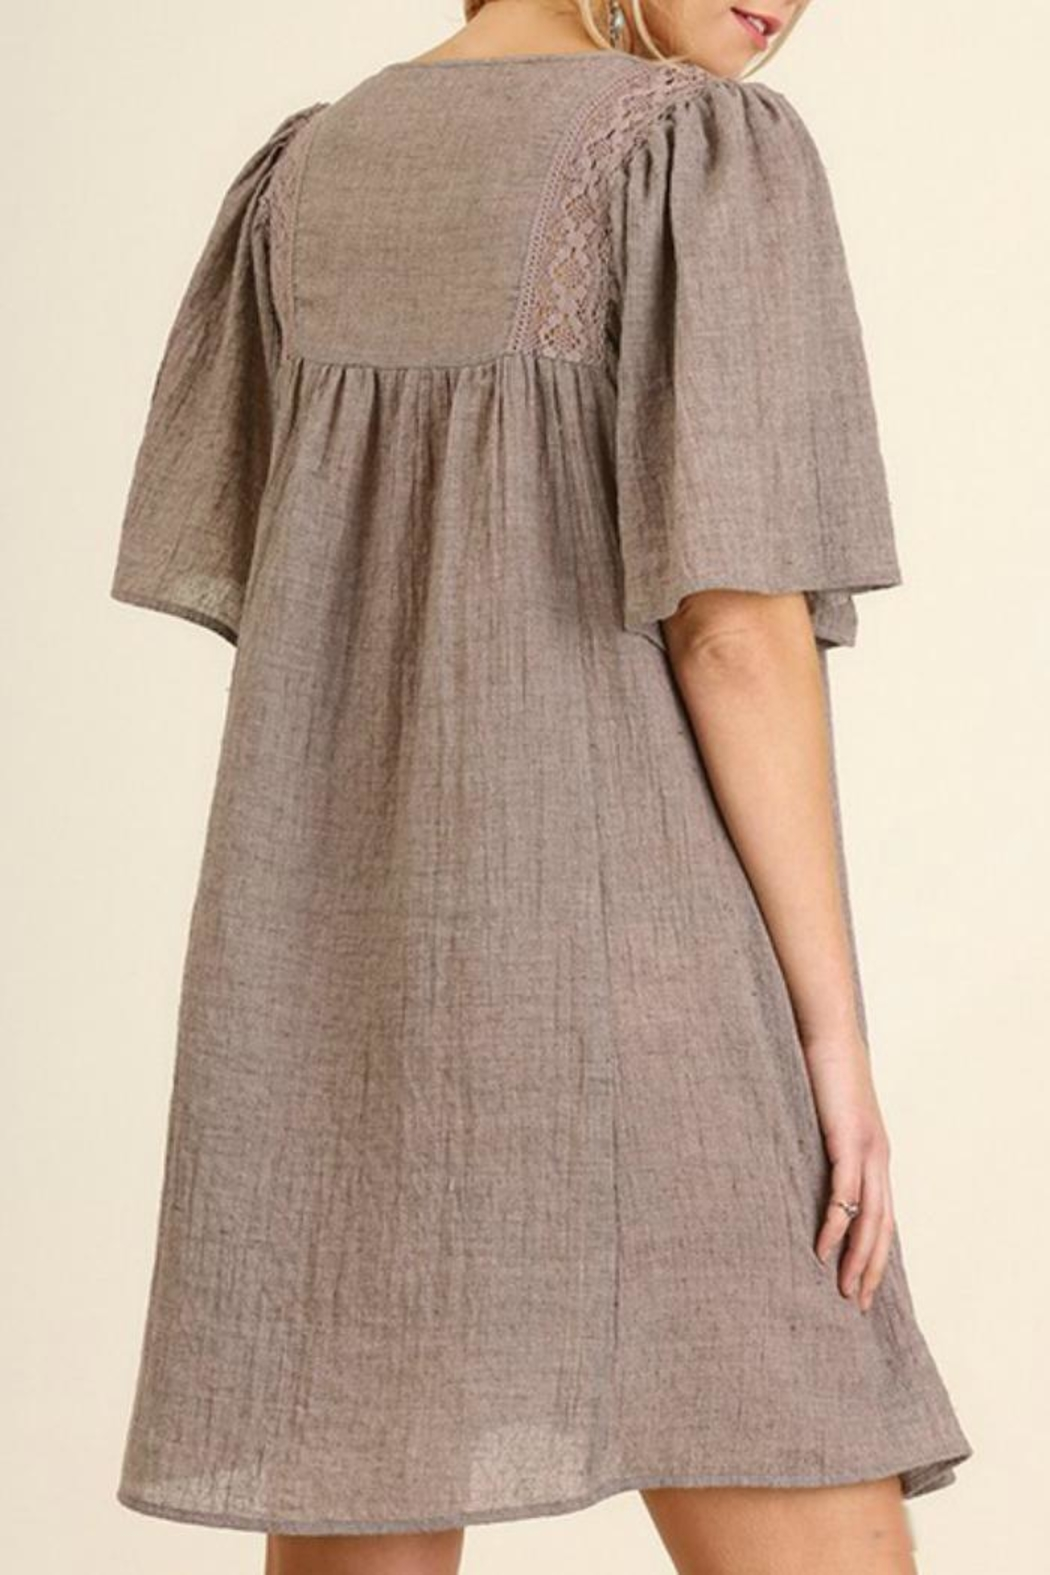 Umgee USA Lace Neckline Dress - Front Full Image